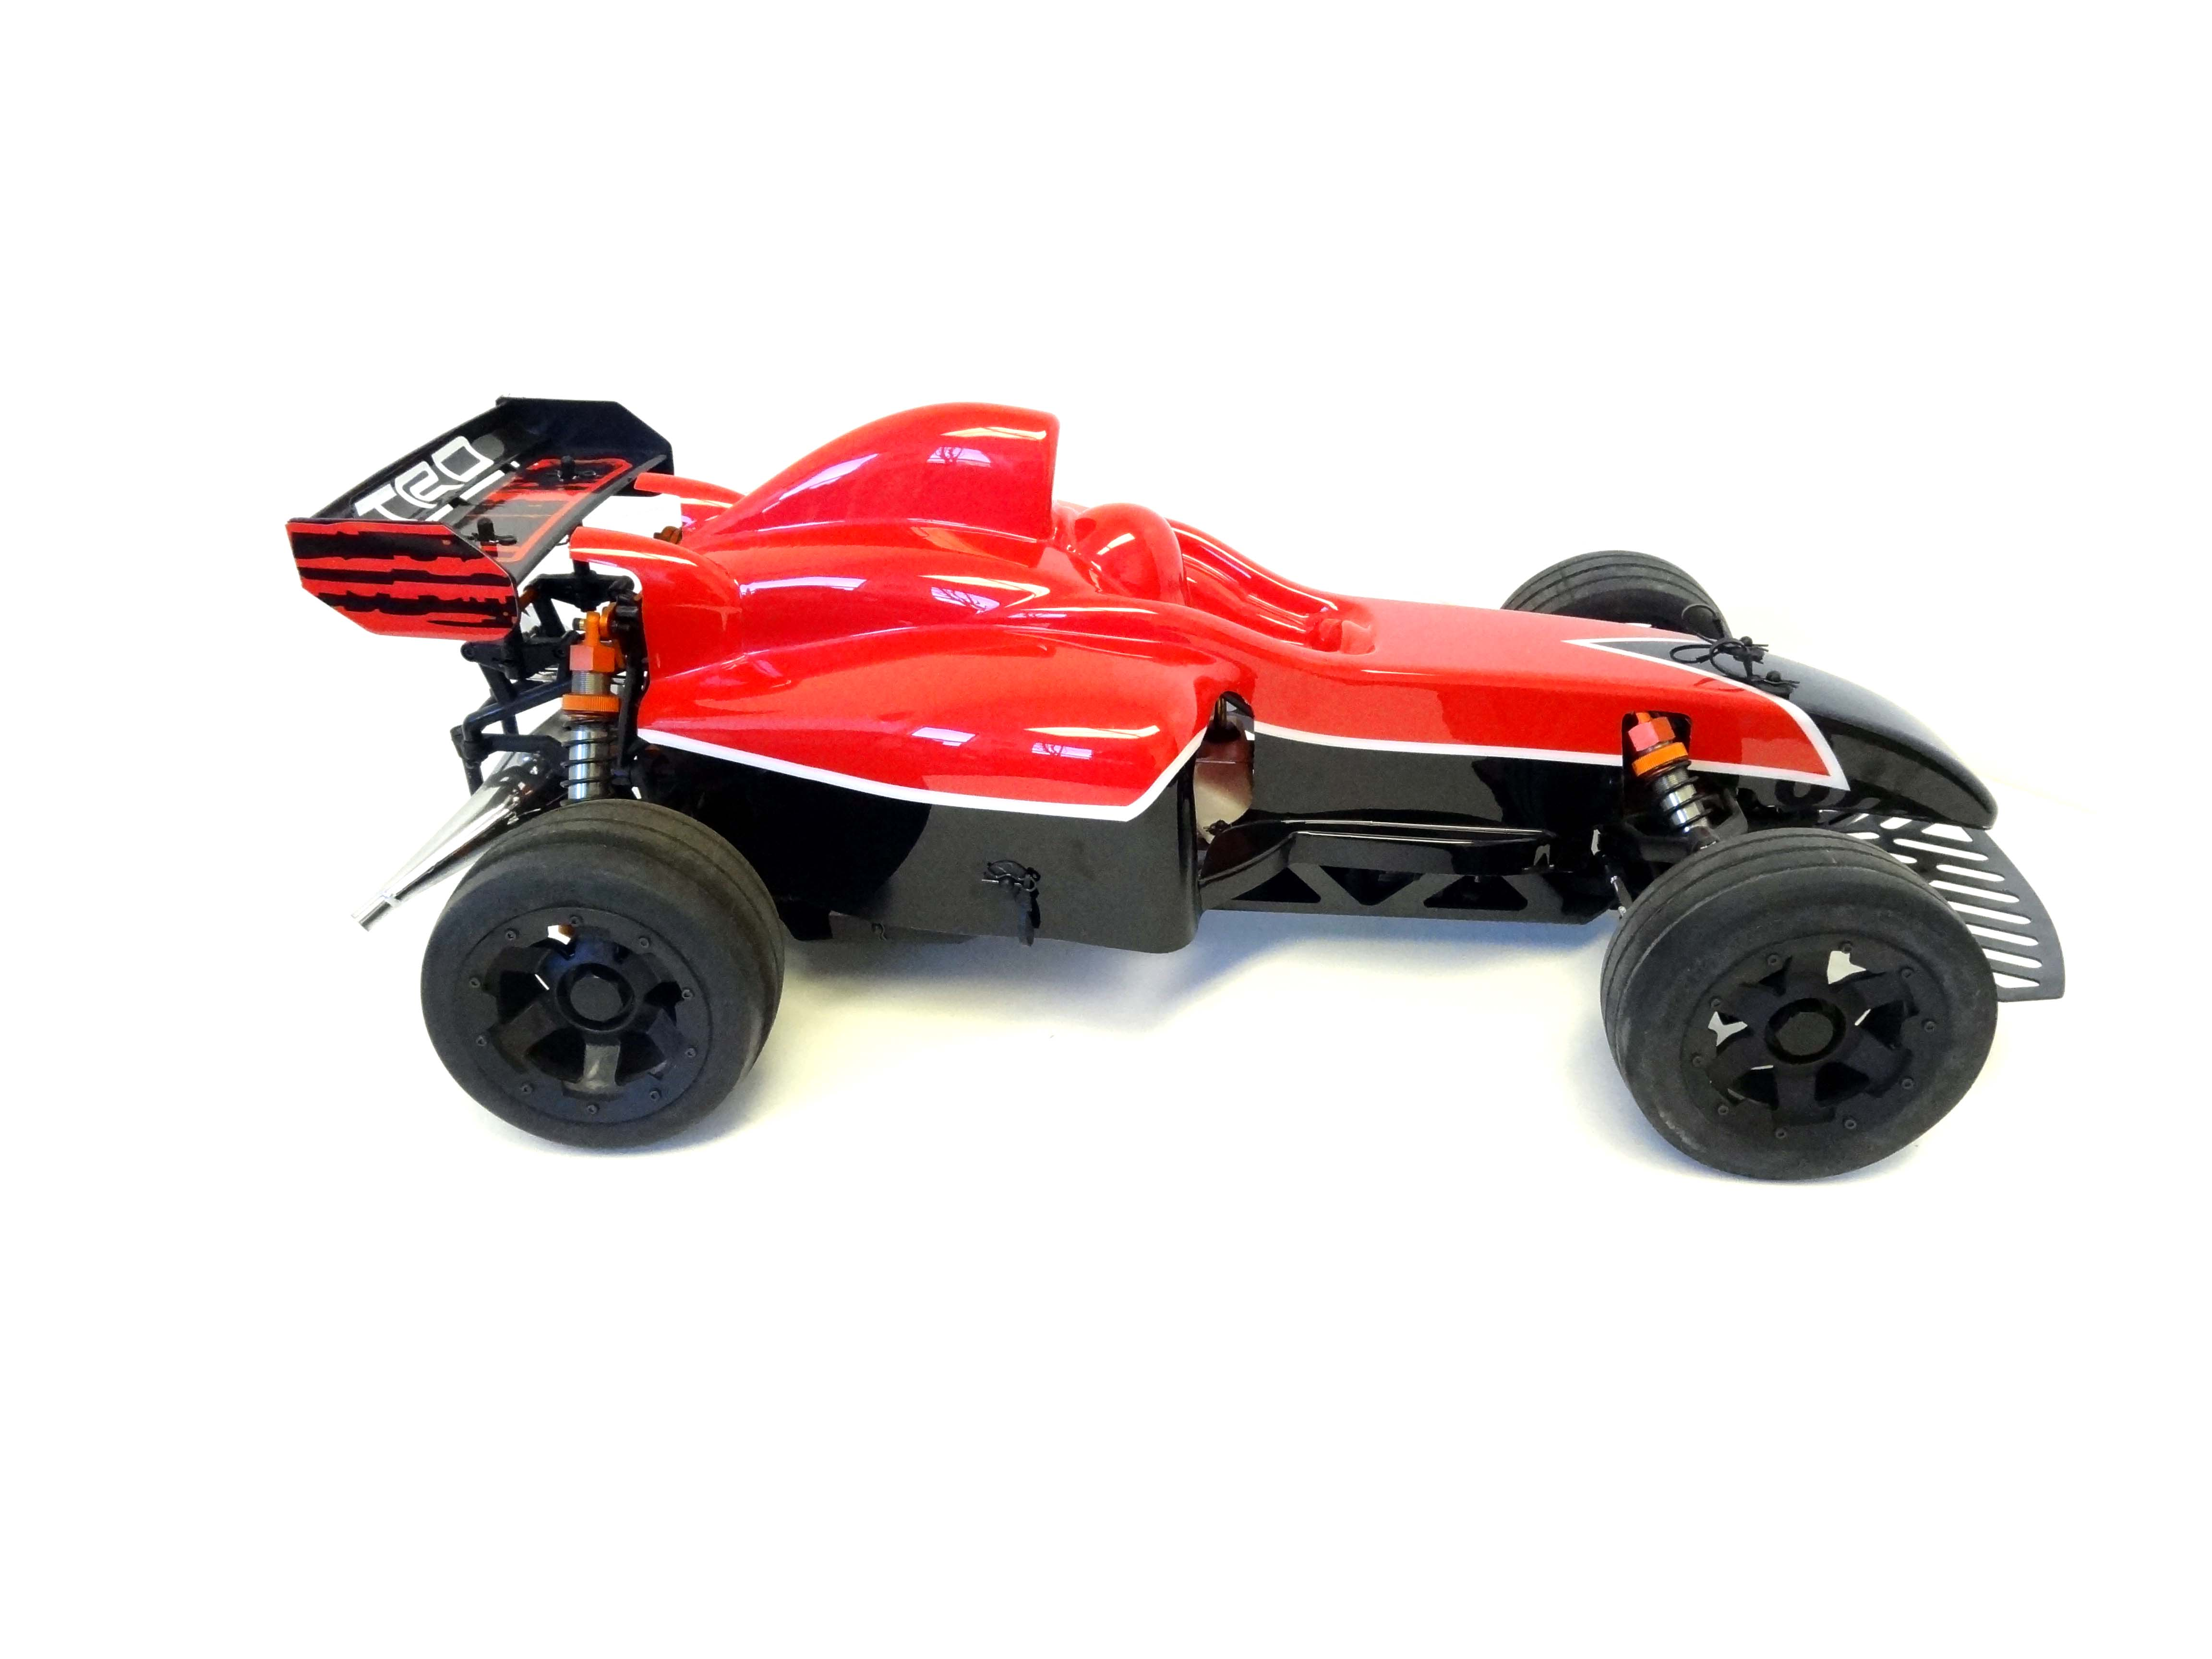 F1 Painted Formula One Body Kit With Mounts (red/black)